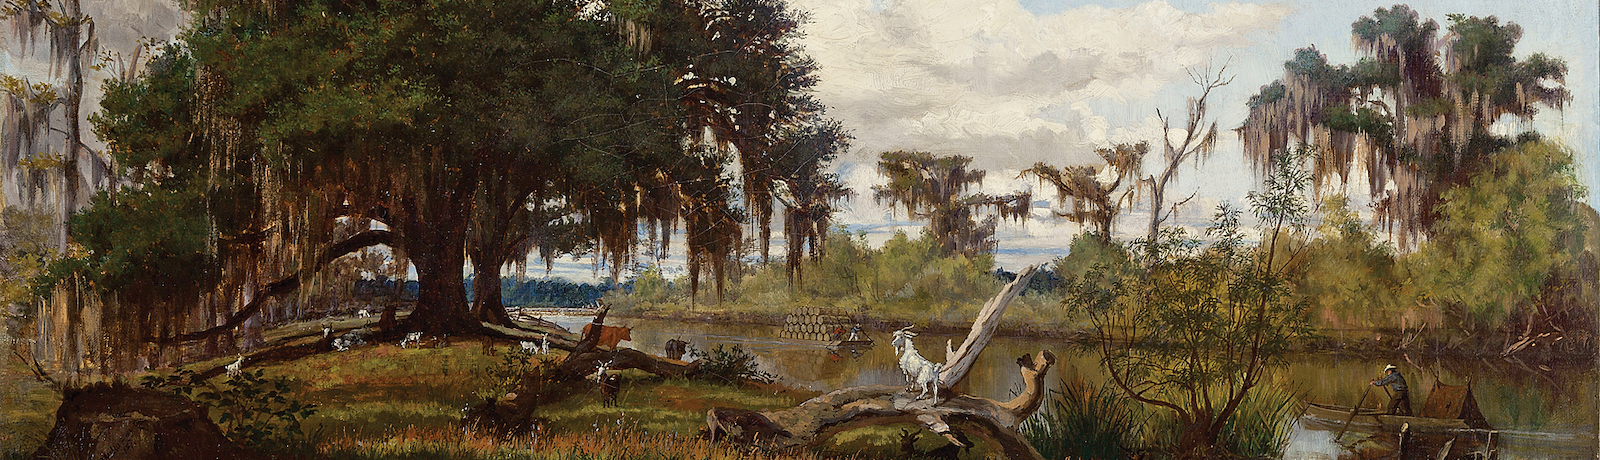 OPENING NOVEMBER 16th • Nineteenth-century artists drawn to Louisiana's riparian terrain redefined the genre of landscape painting.